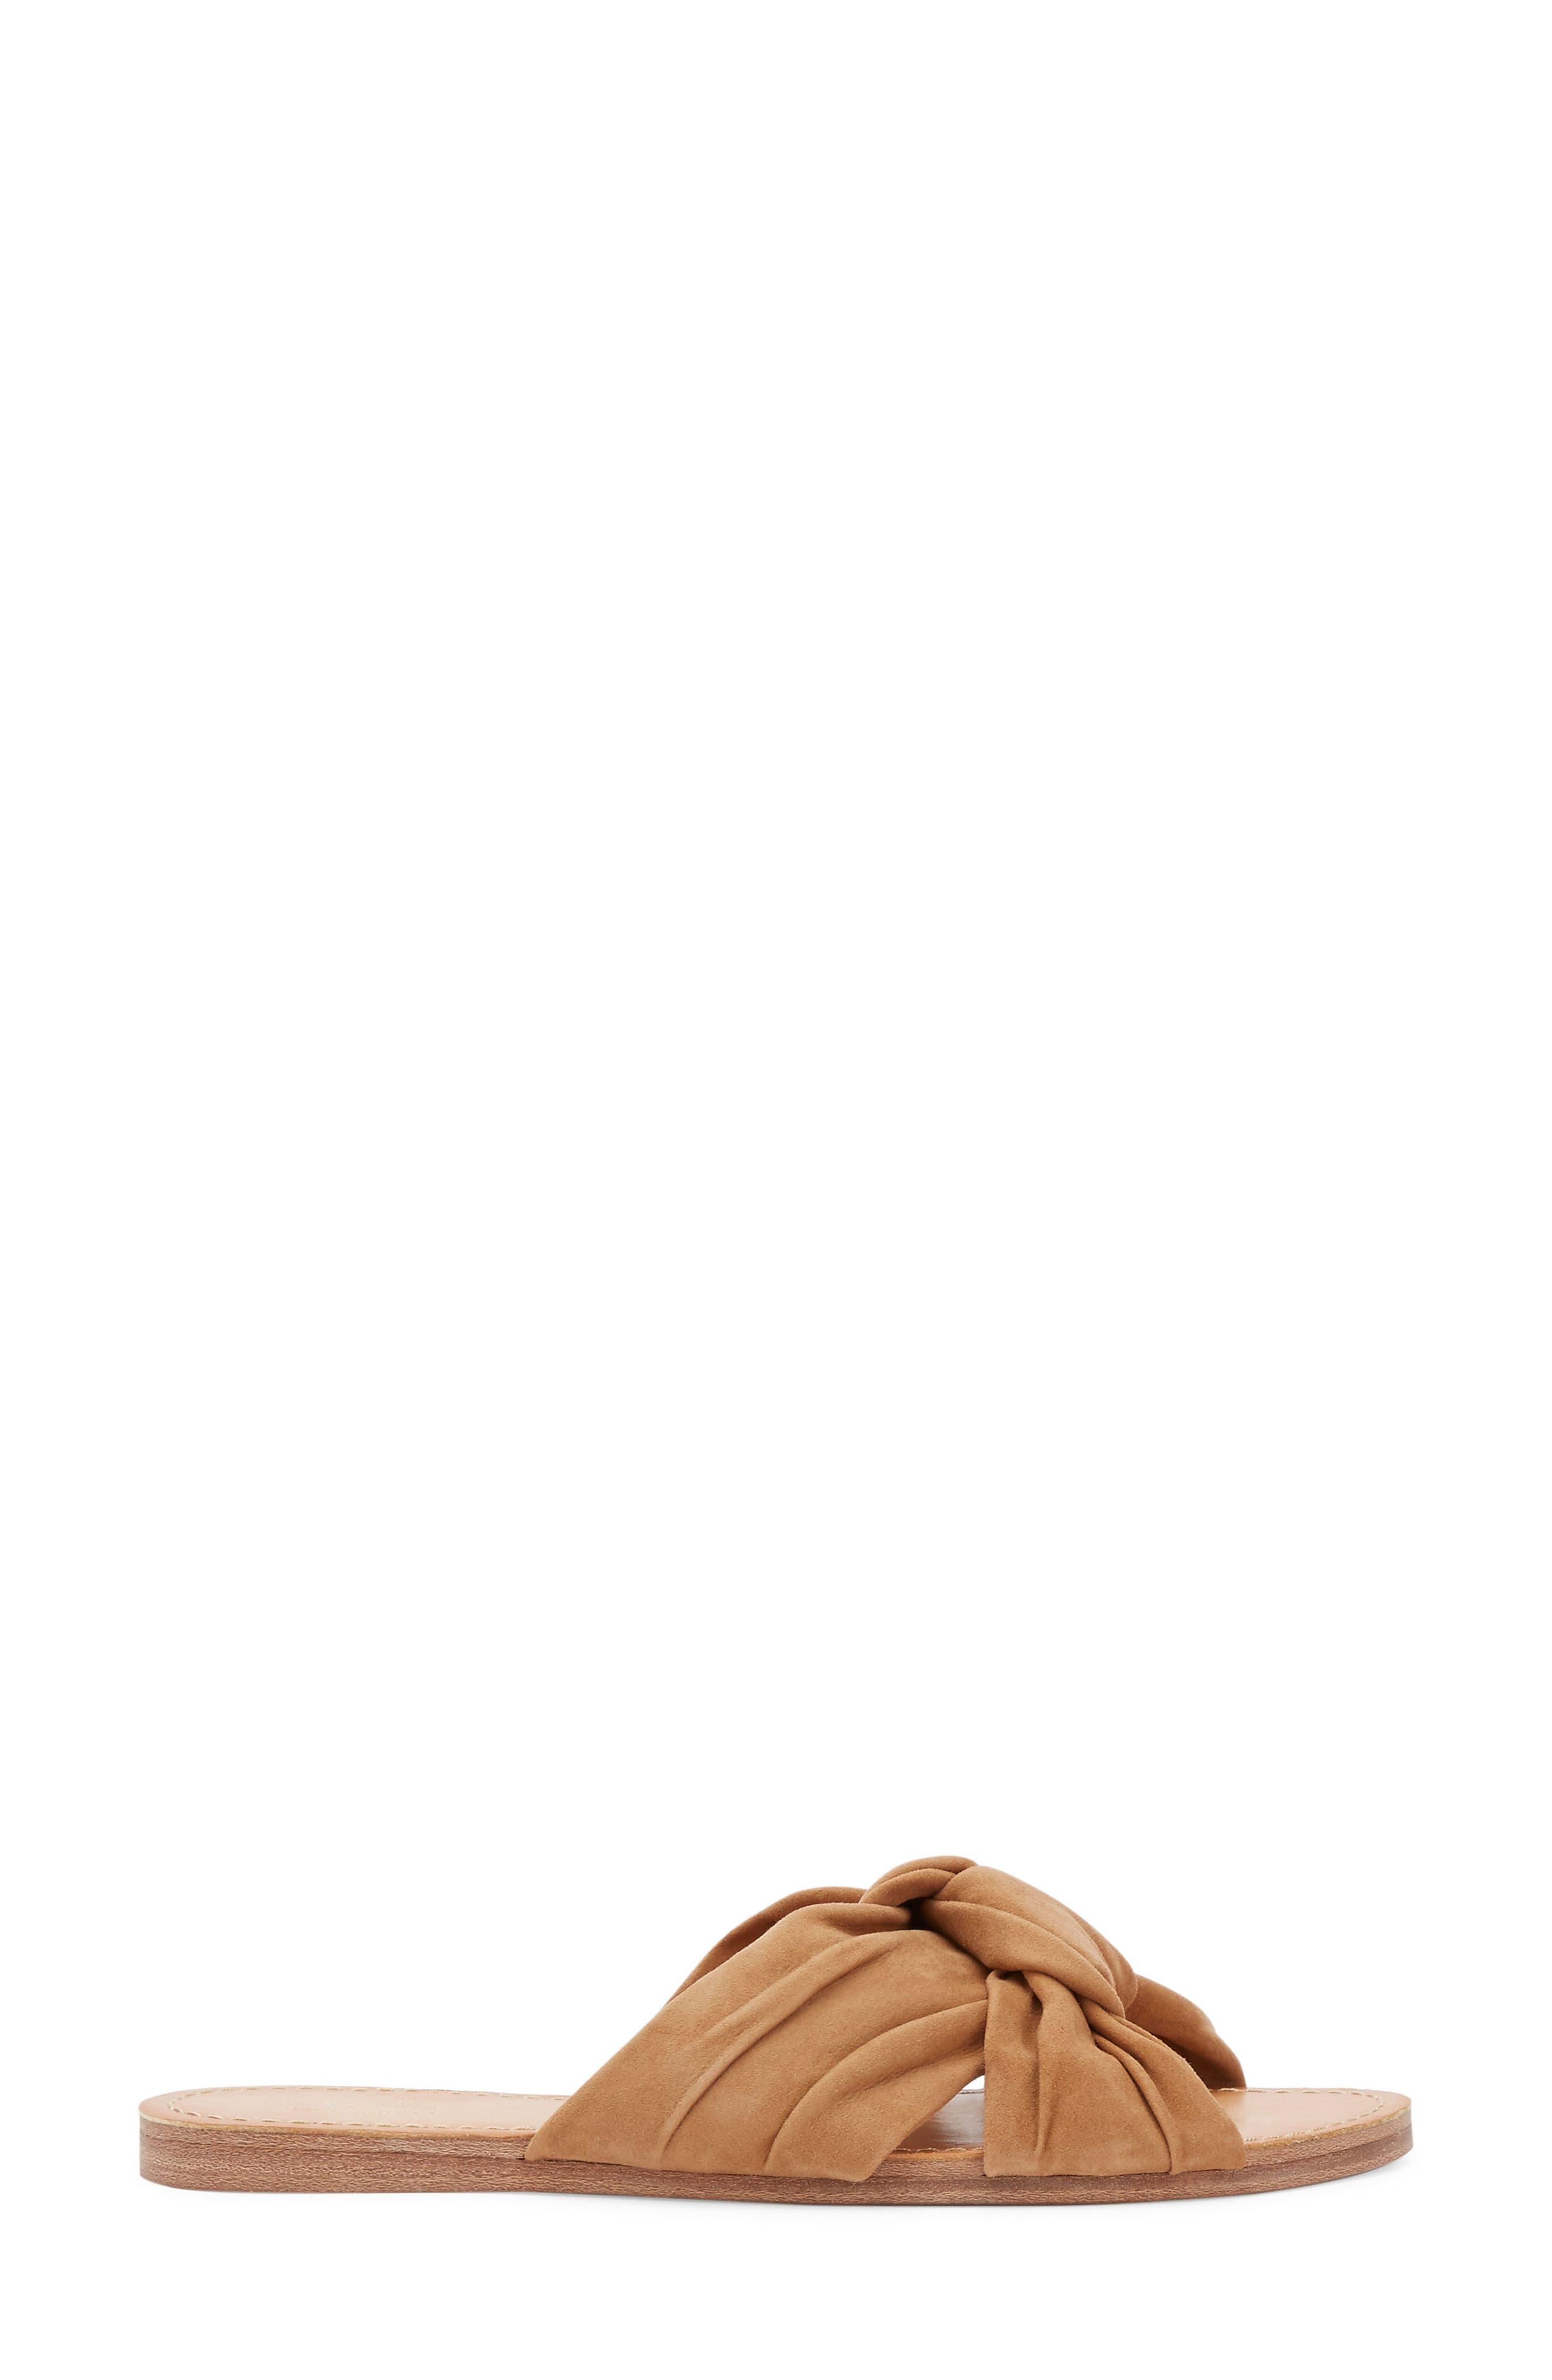 Sophie Knotted Bow Sandal,                             Alternate thumbnail 3, color,                             TAN SUEDE